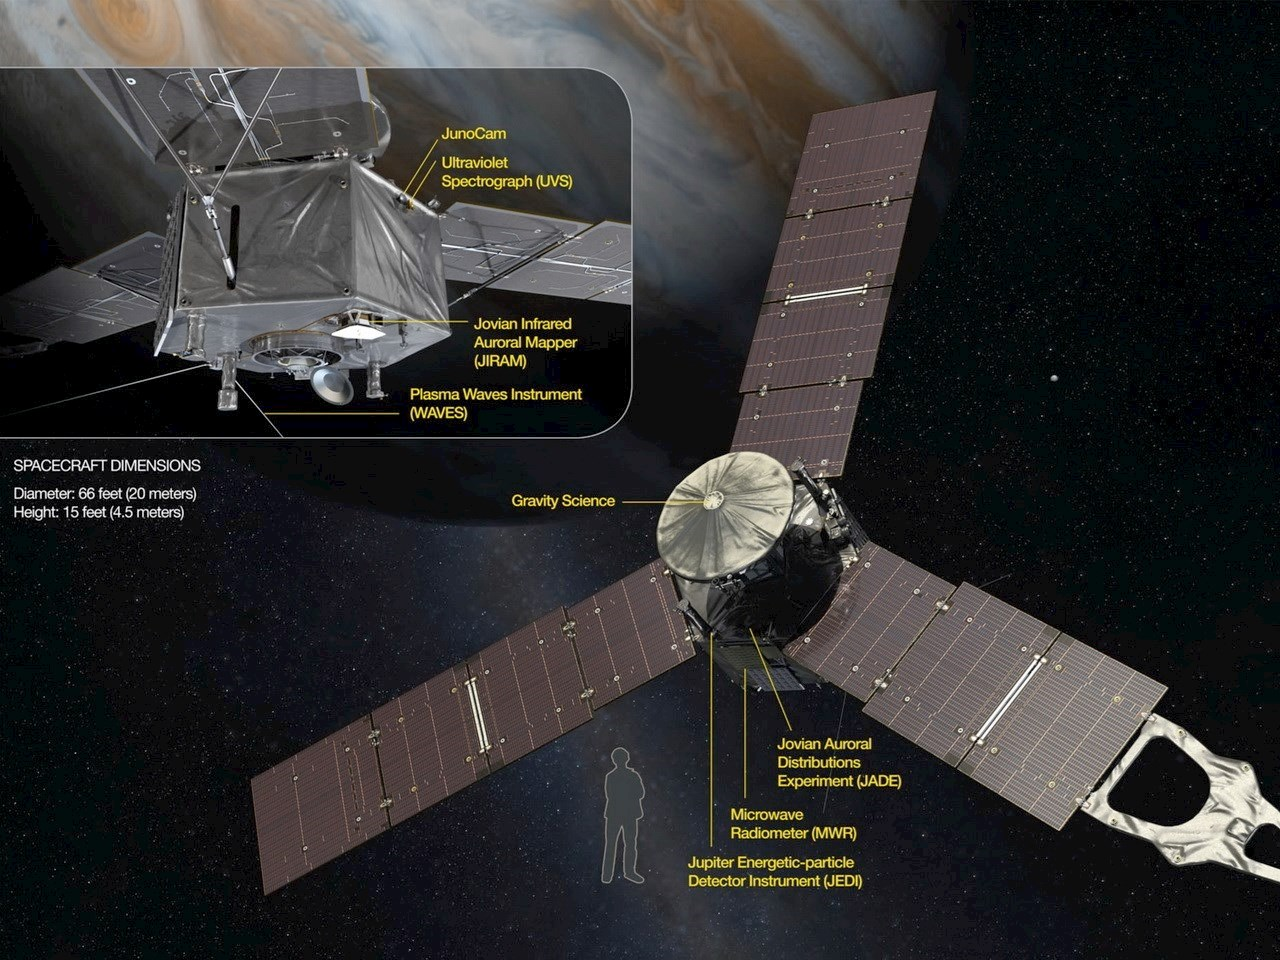 Illustration of the Juno spacecraft instruments